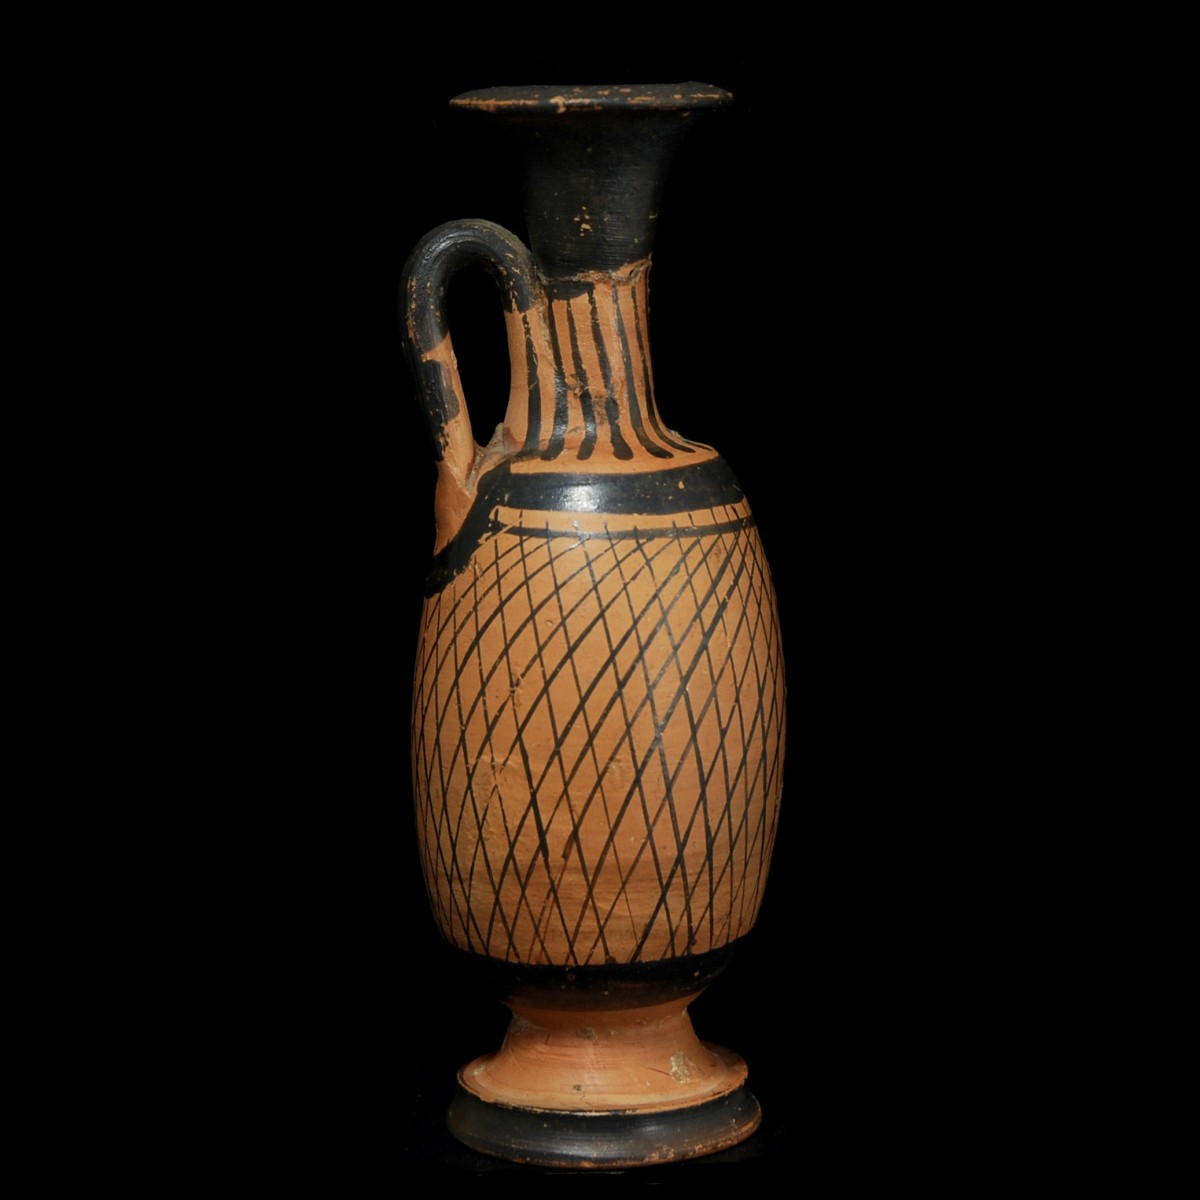 Reticulated lekythos